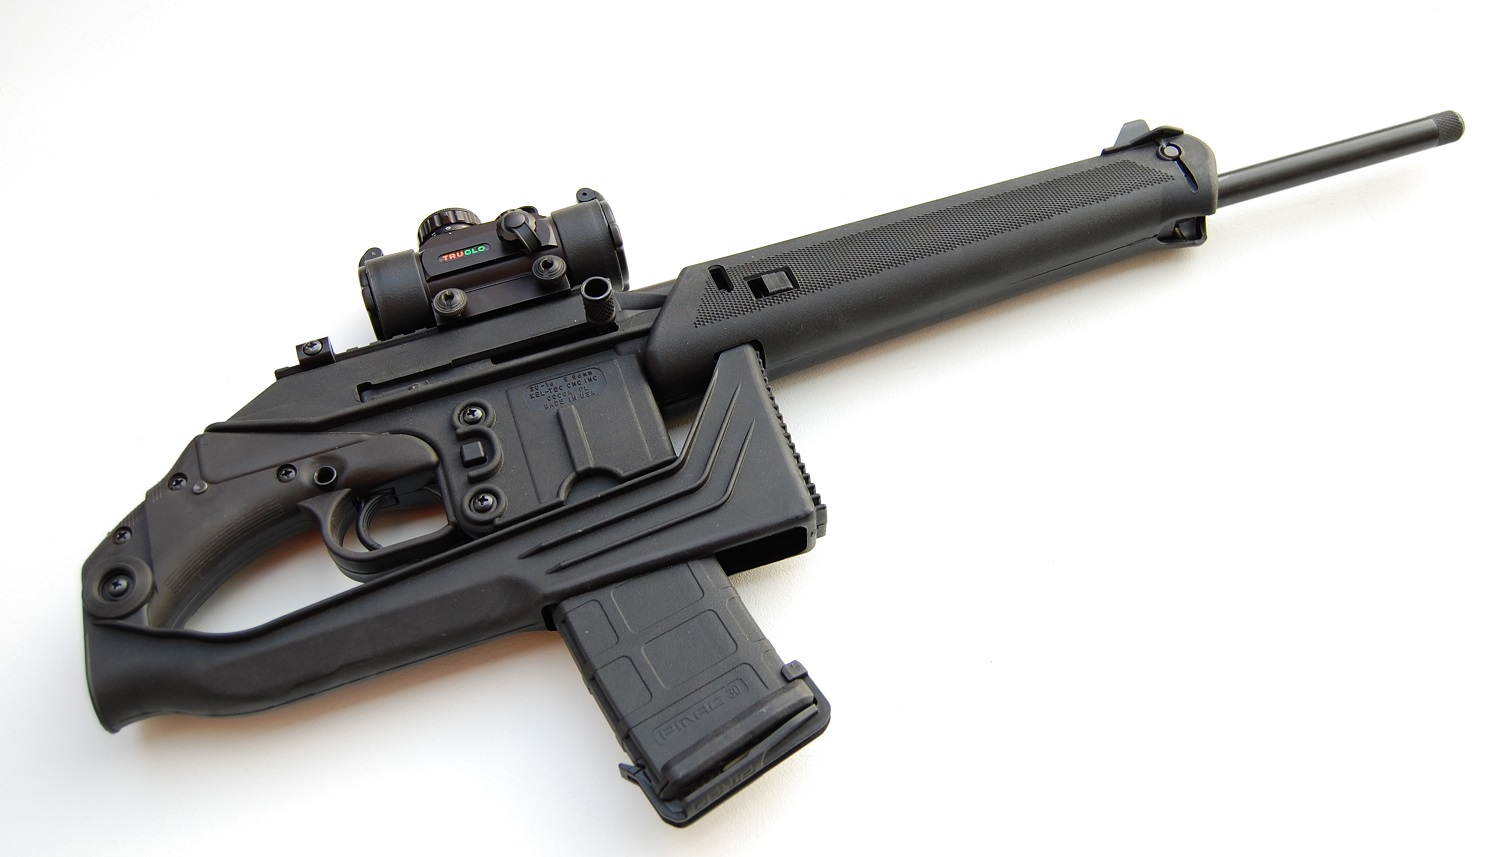 Kel-Tec Wants To Beat The AR-15, But Is The Su-16 Up To The Challenge?